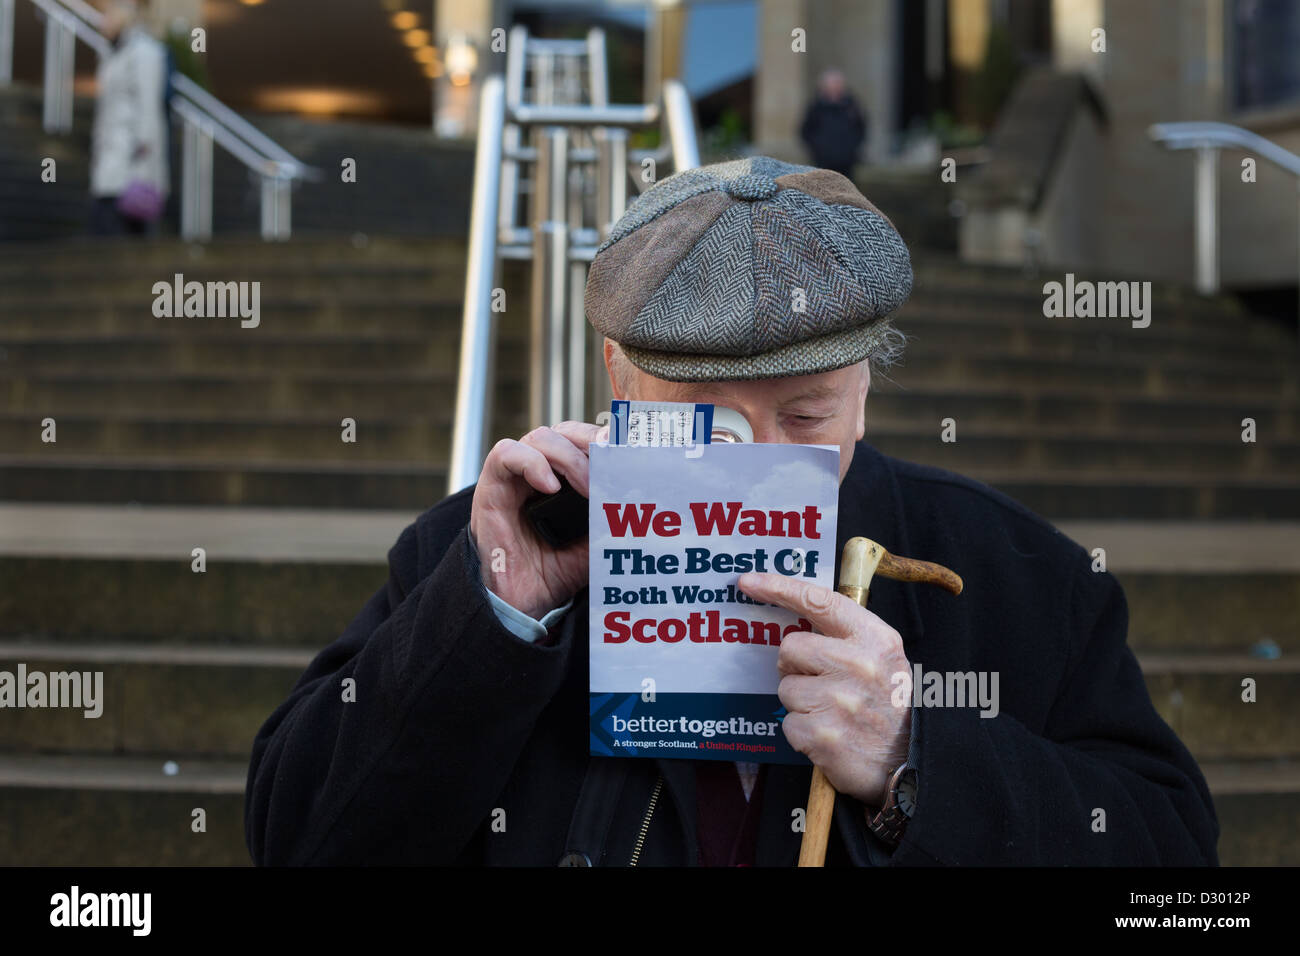 The 'Better Together' multi-party/ anti-independence/ pro-Union, leafleting team campaign in Glasgow, Scotland. - Stock Image